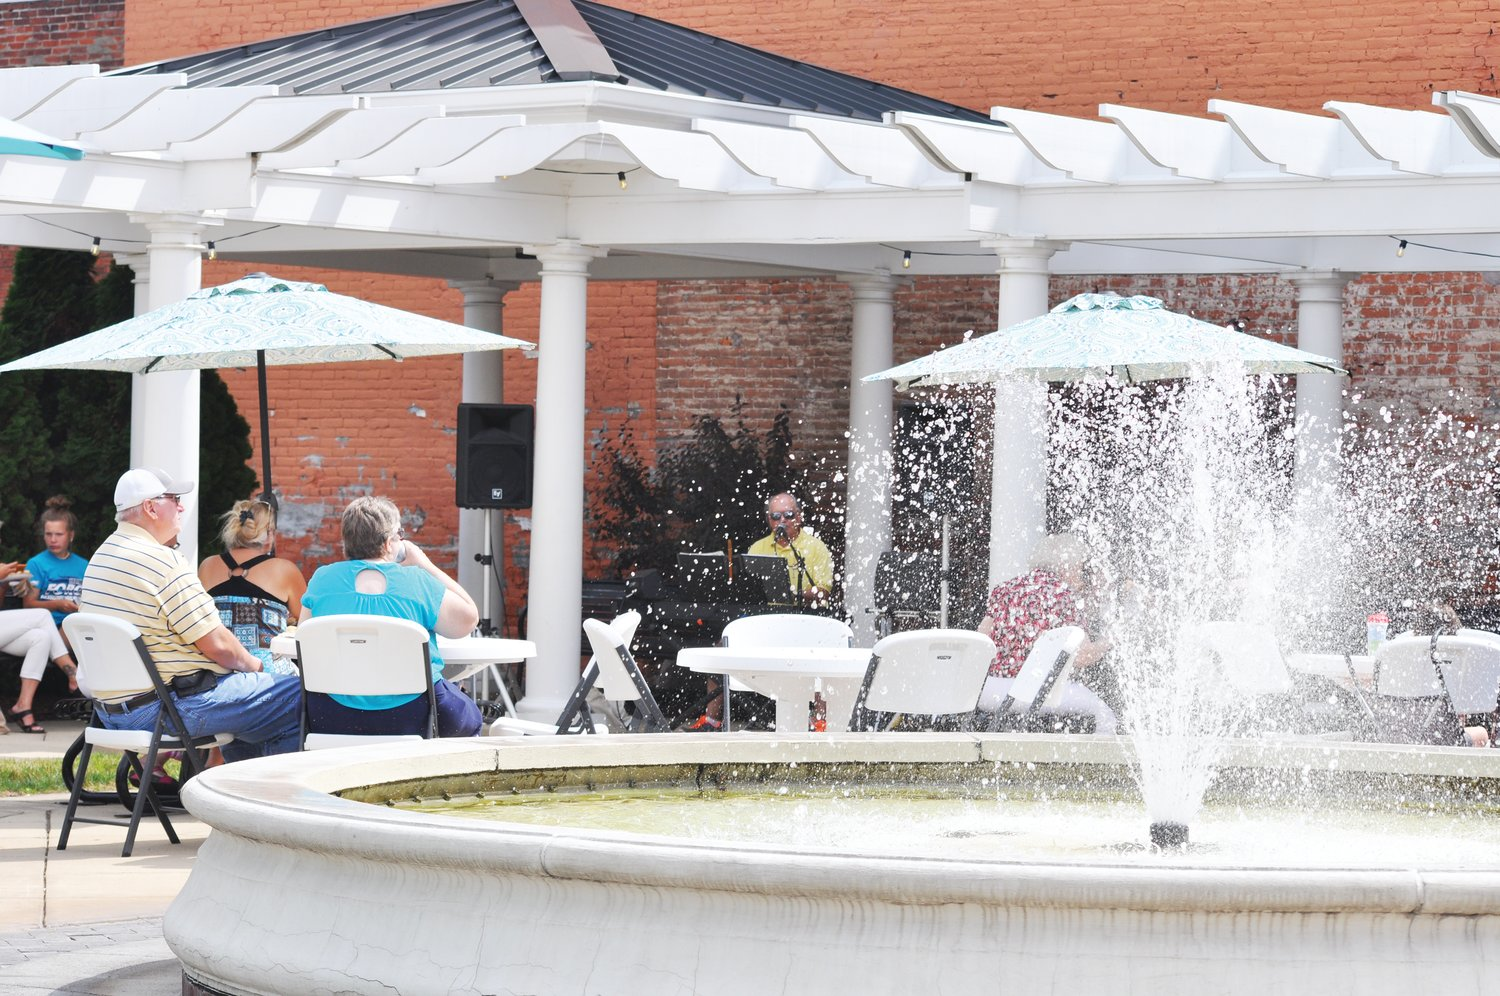 Marie Canine Plaza will again host Crawfordsville Main Street's Lunch on the Plaza series this summer. The Crawfordsville Board of Public Works & Safety gave approval Wednesday to proceed with additional COVID-19 pandemic precautions in place.